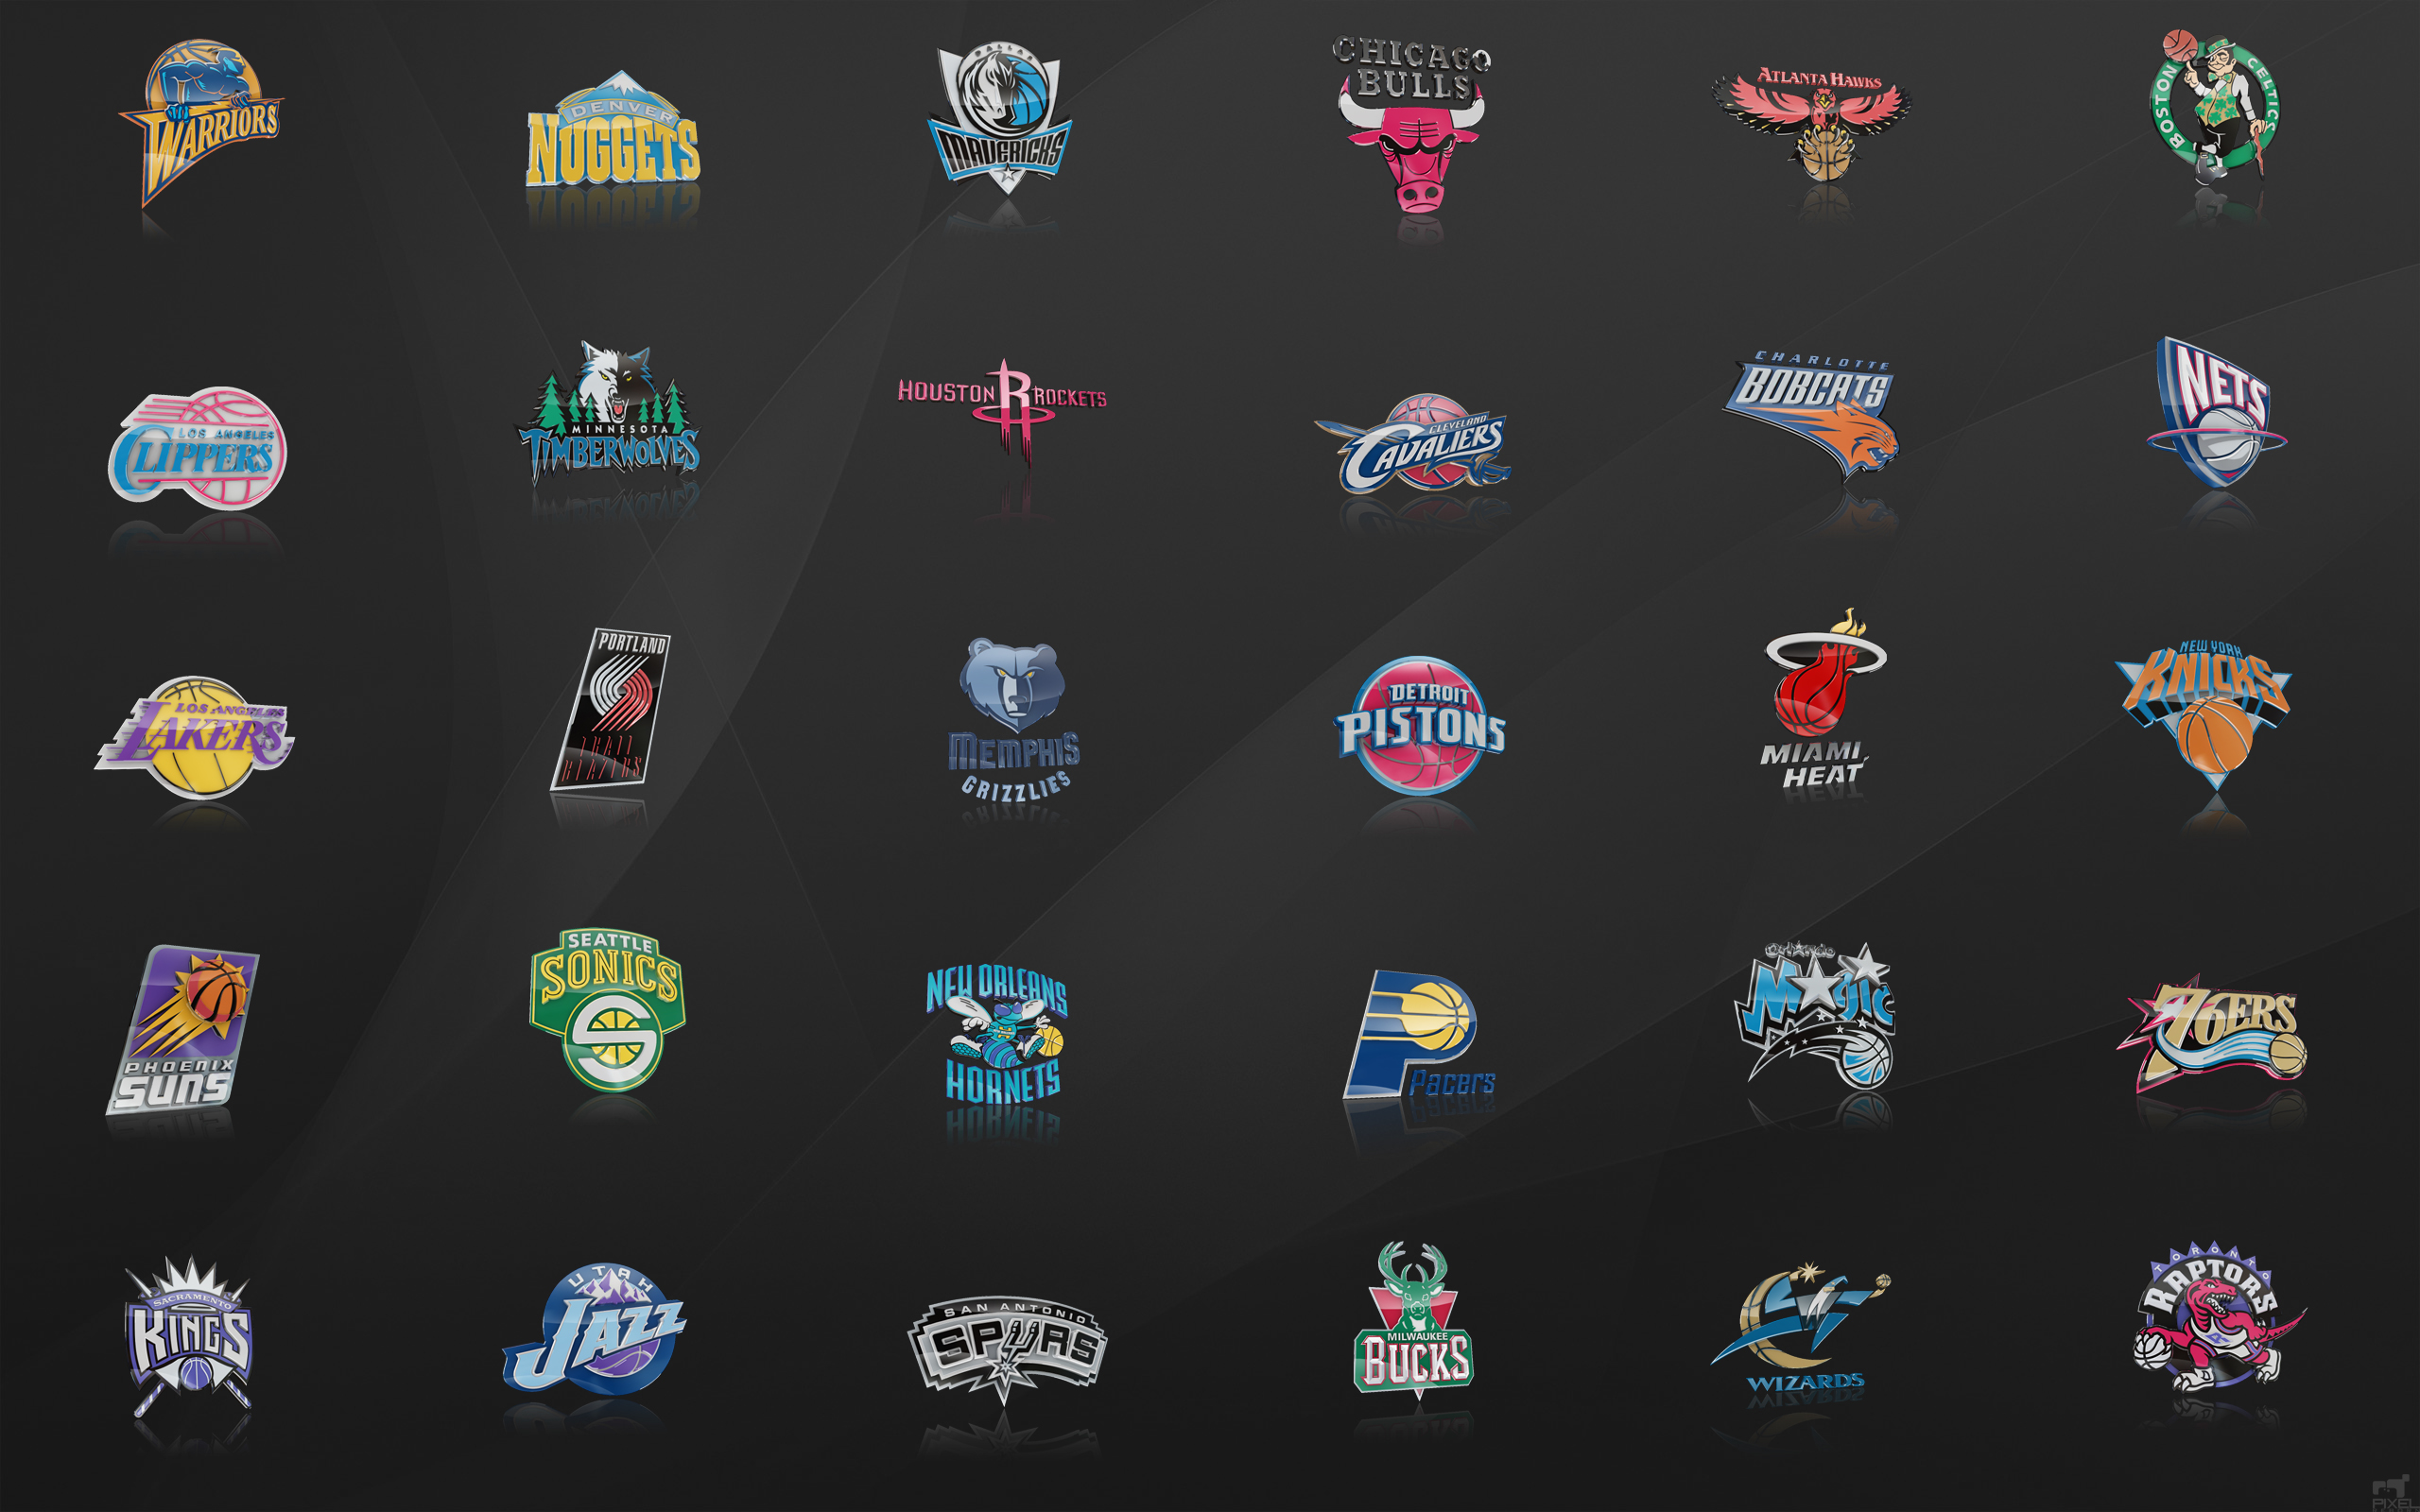 NBA Team Logos Wallpaper By Nbafan On DeviantArt